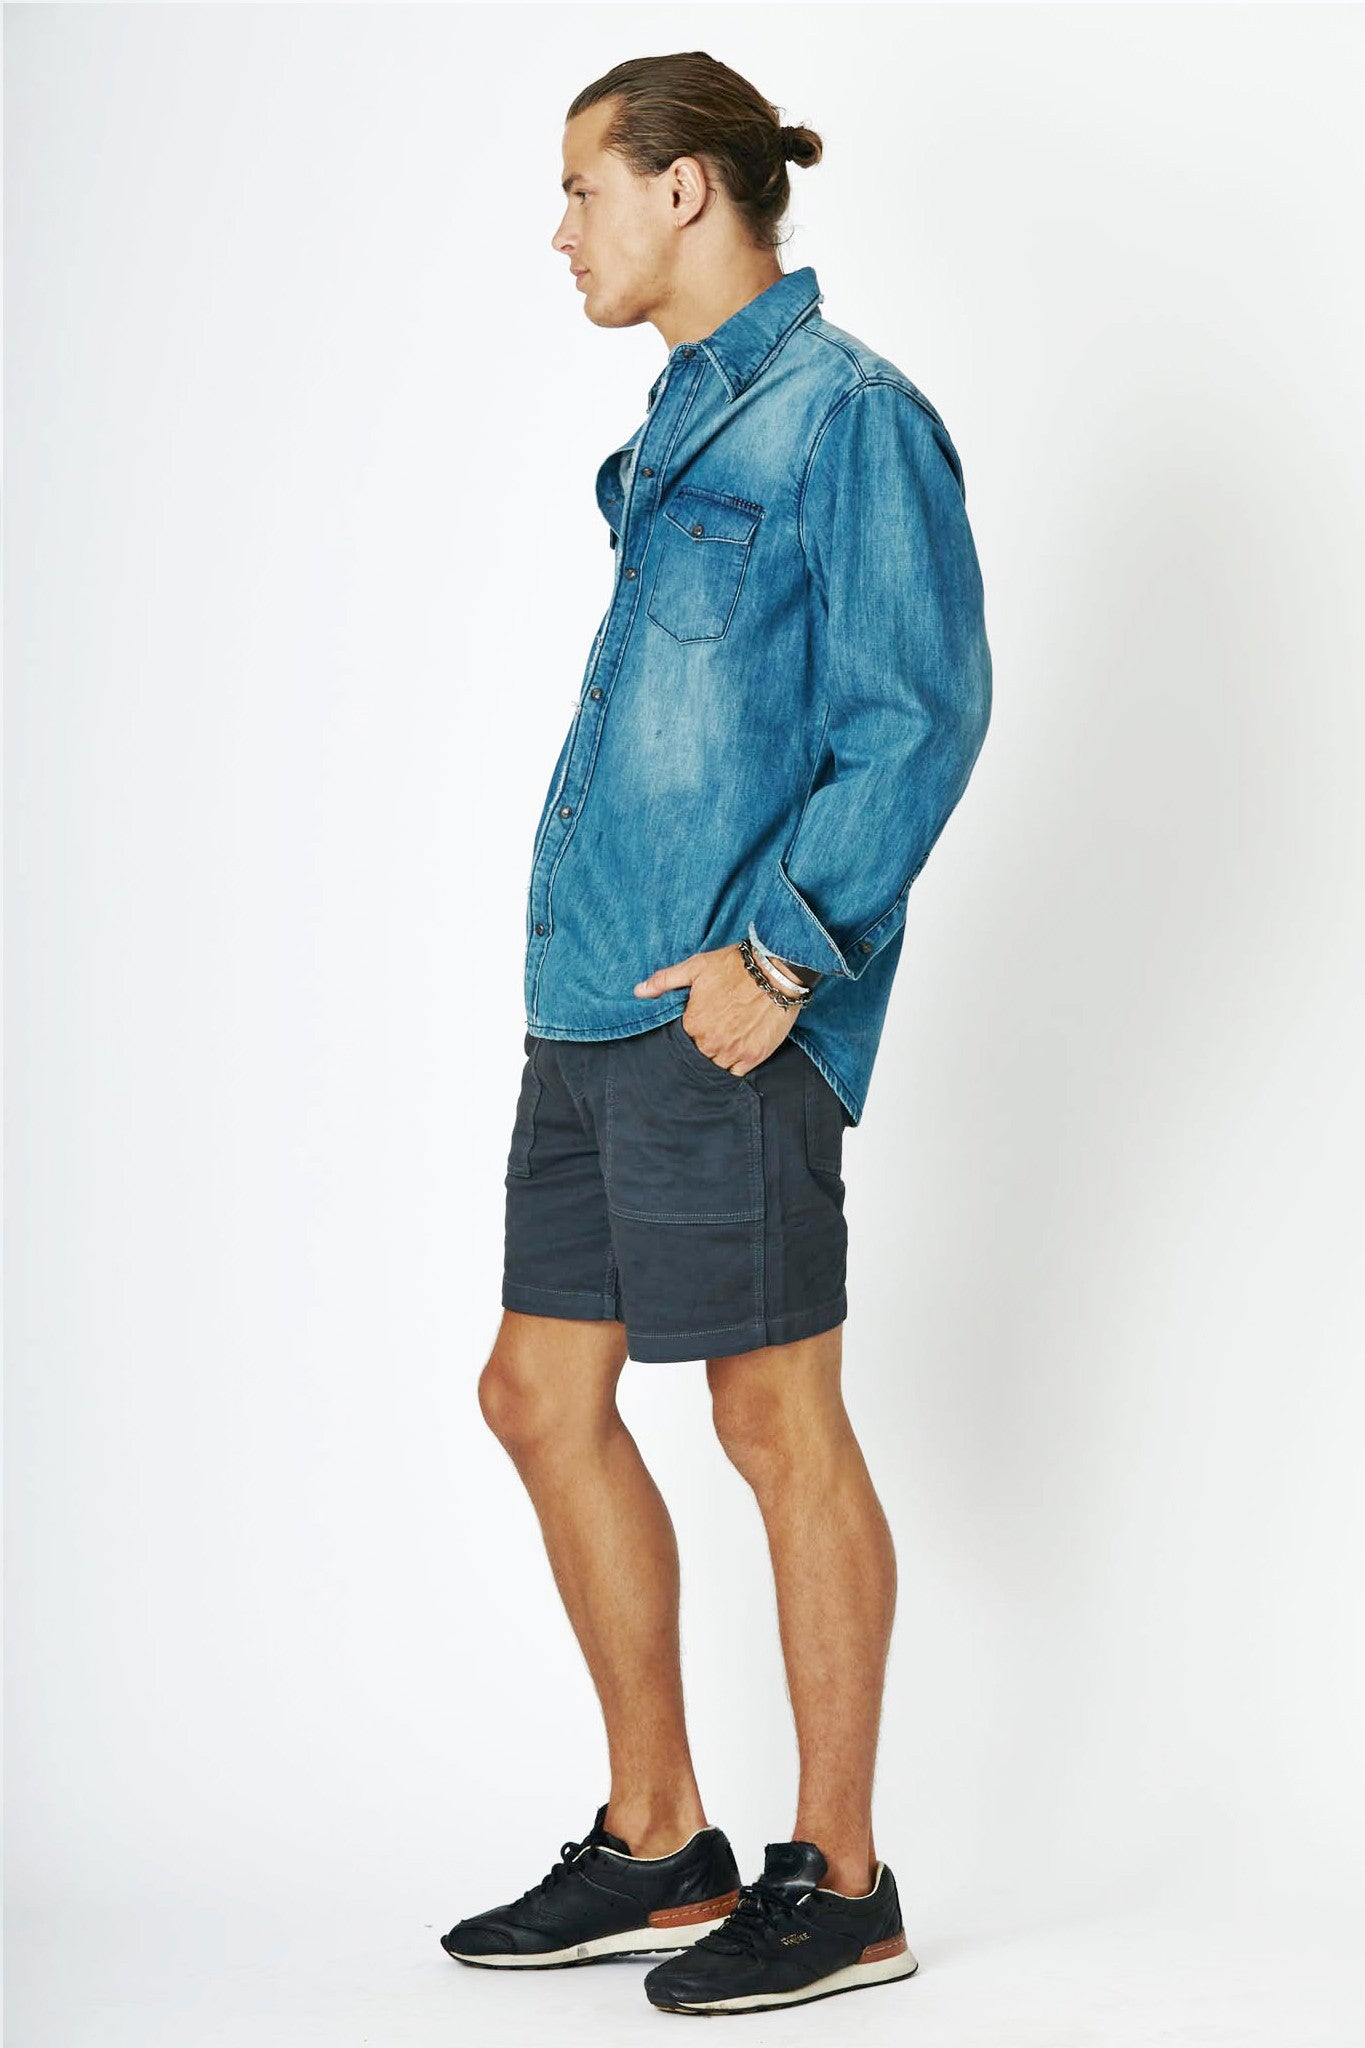 #2F10 Denim Pipe Shirt Blue Thames - denimcolab